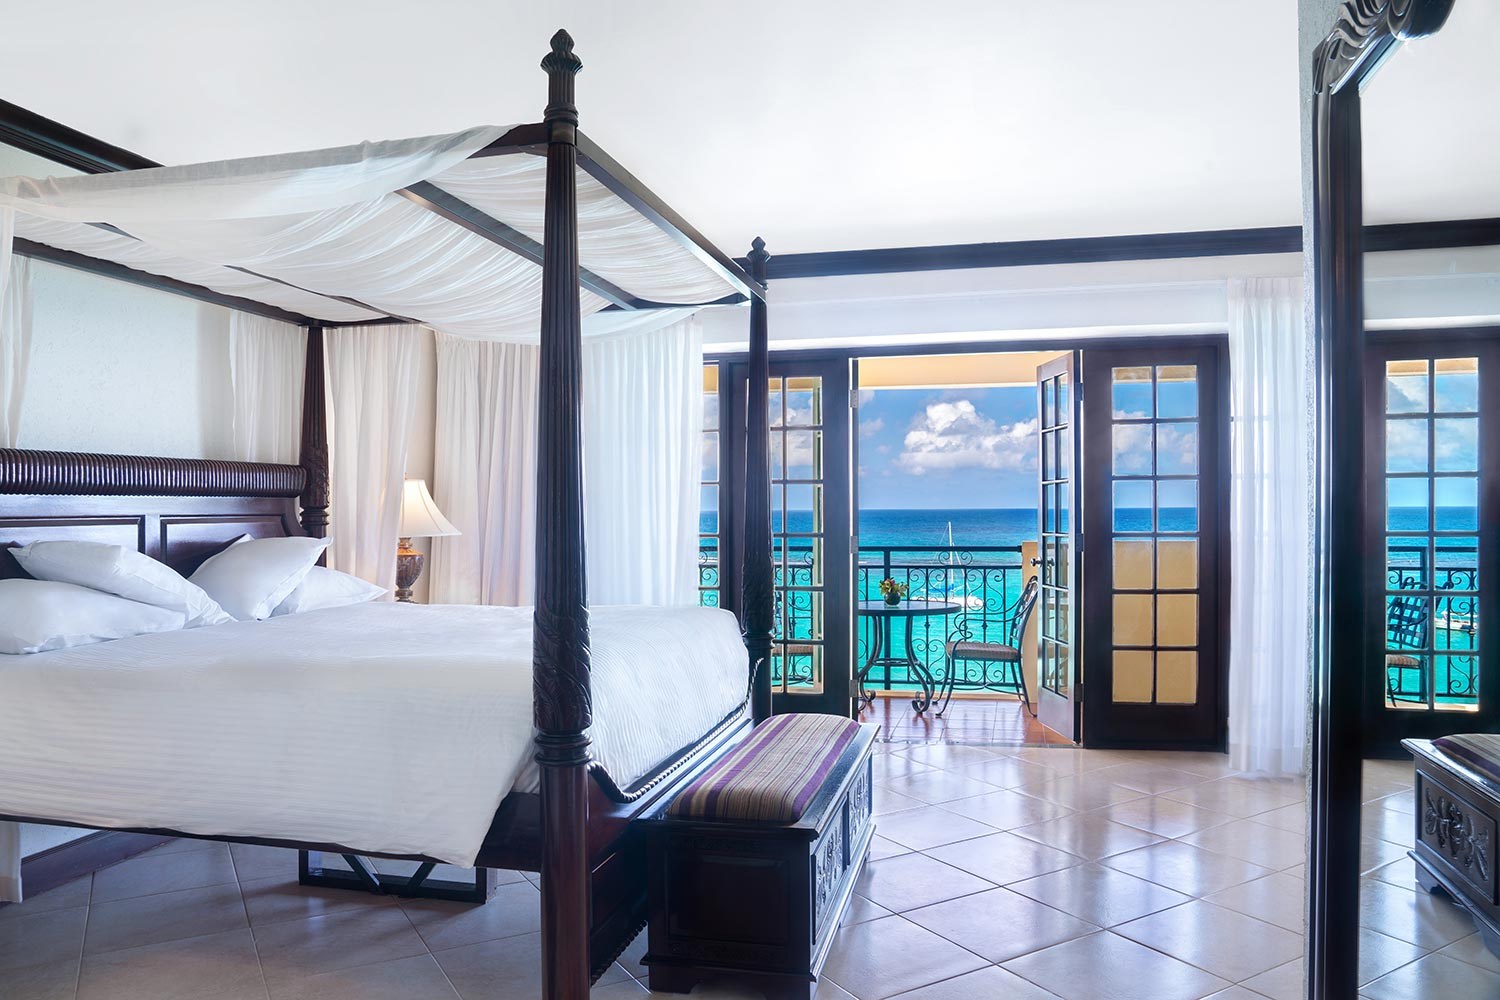 Honeymoon Haven Oceanfront Suite  Lavish suite overlooking direct ocean vistas and personalized butler service.  Starting at $411.00/per night